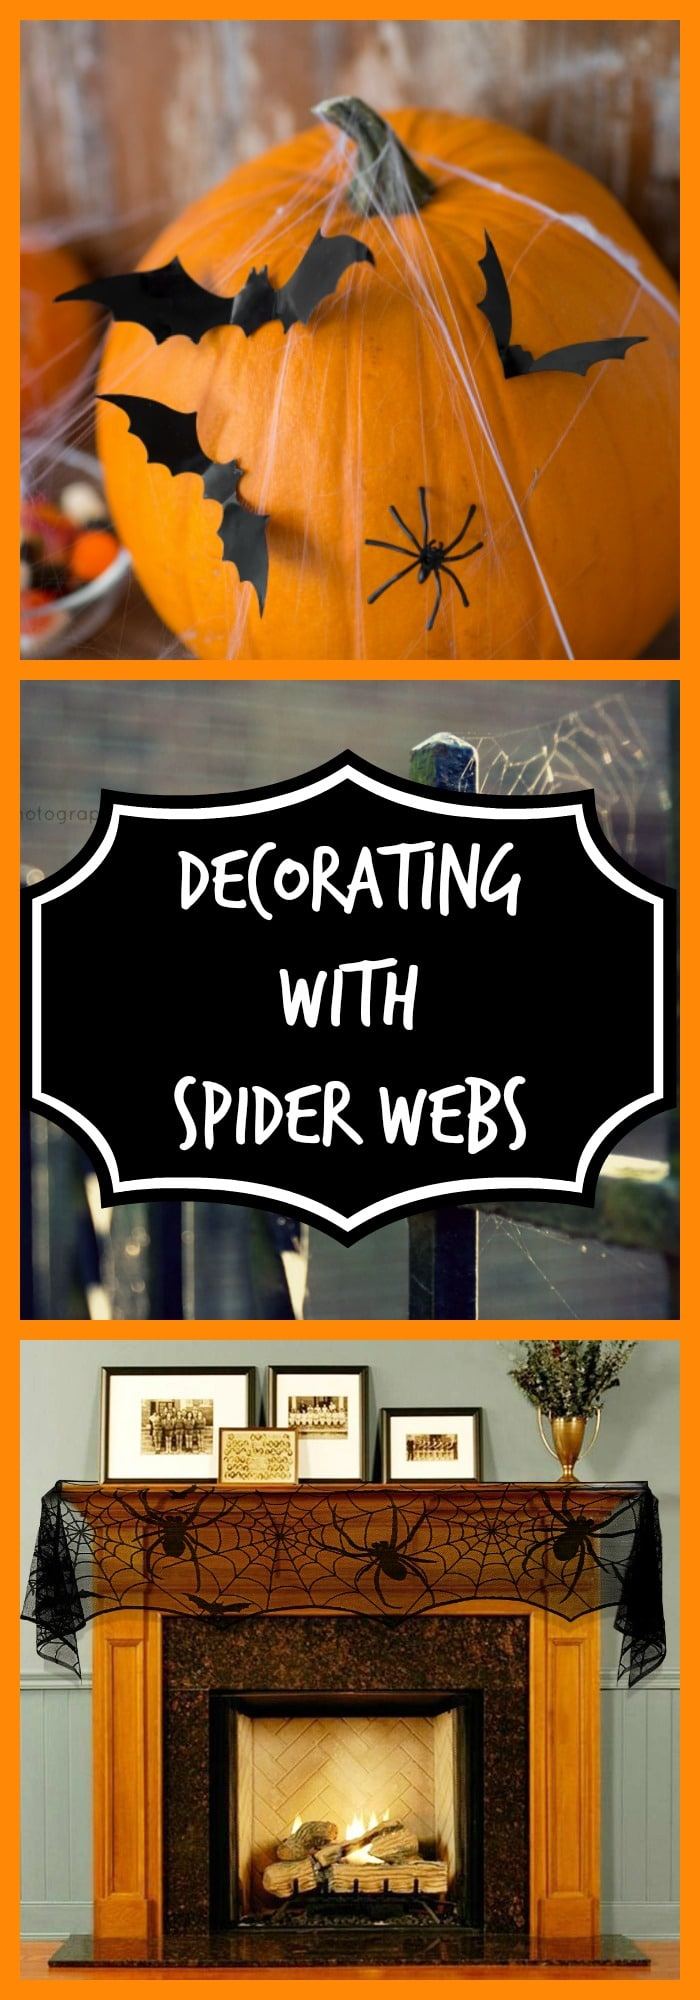 Decorating with Spider Webs